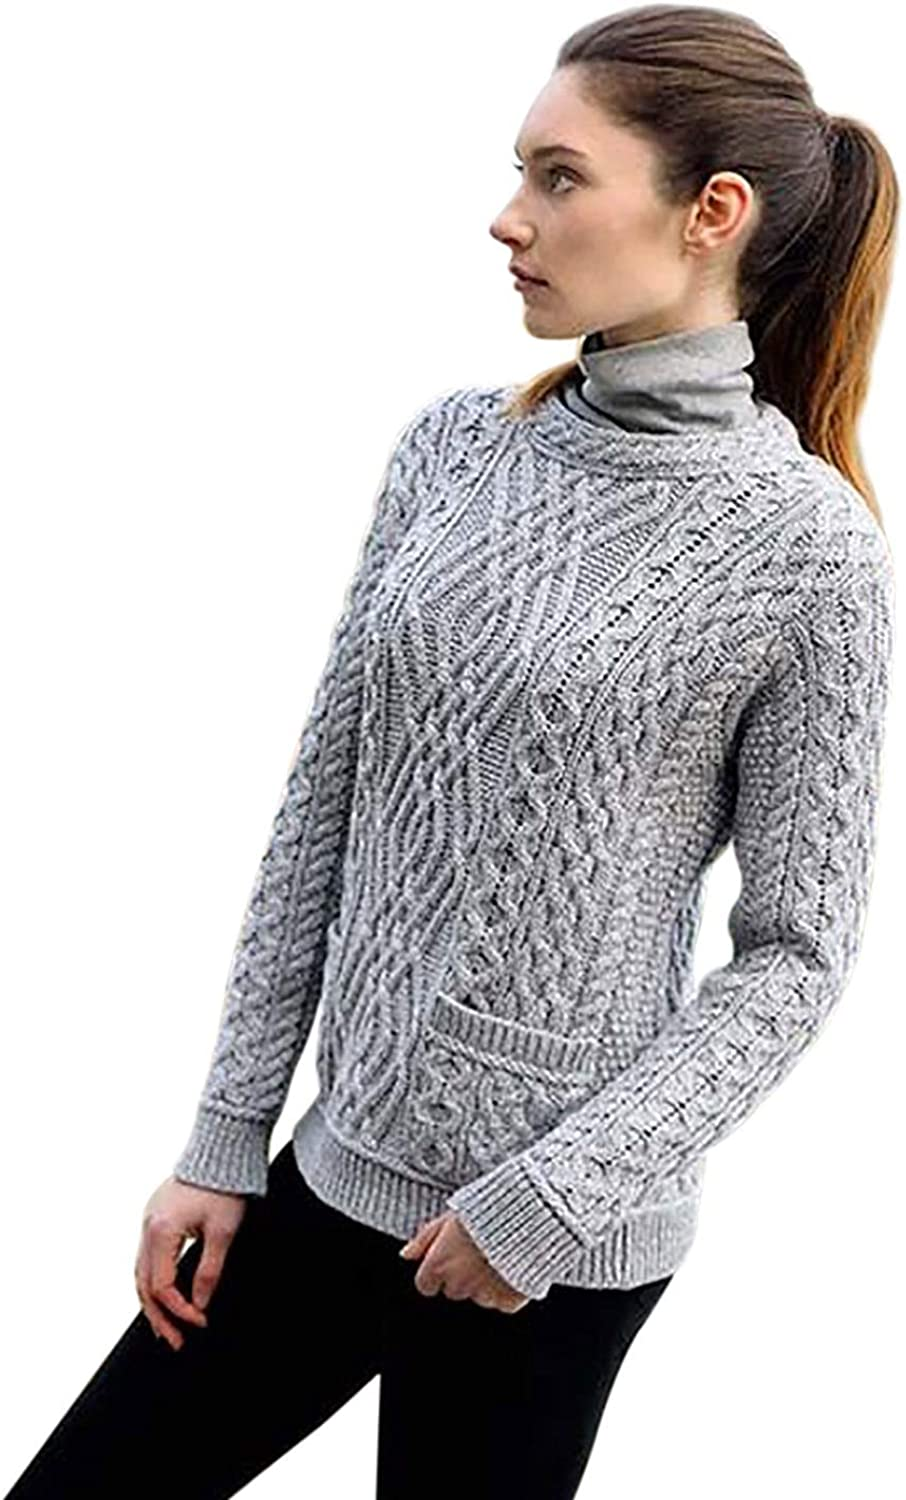 West End Knitwear Irish Cable Crew Neck Merino Wool Sweater with Pockets (Grey, Large)